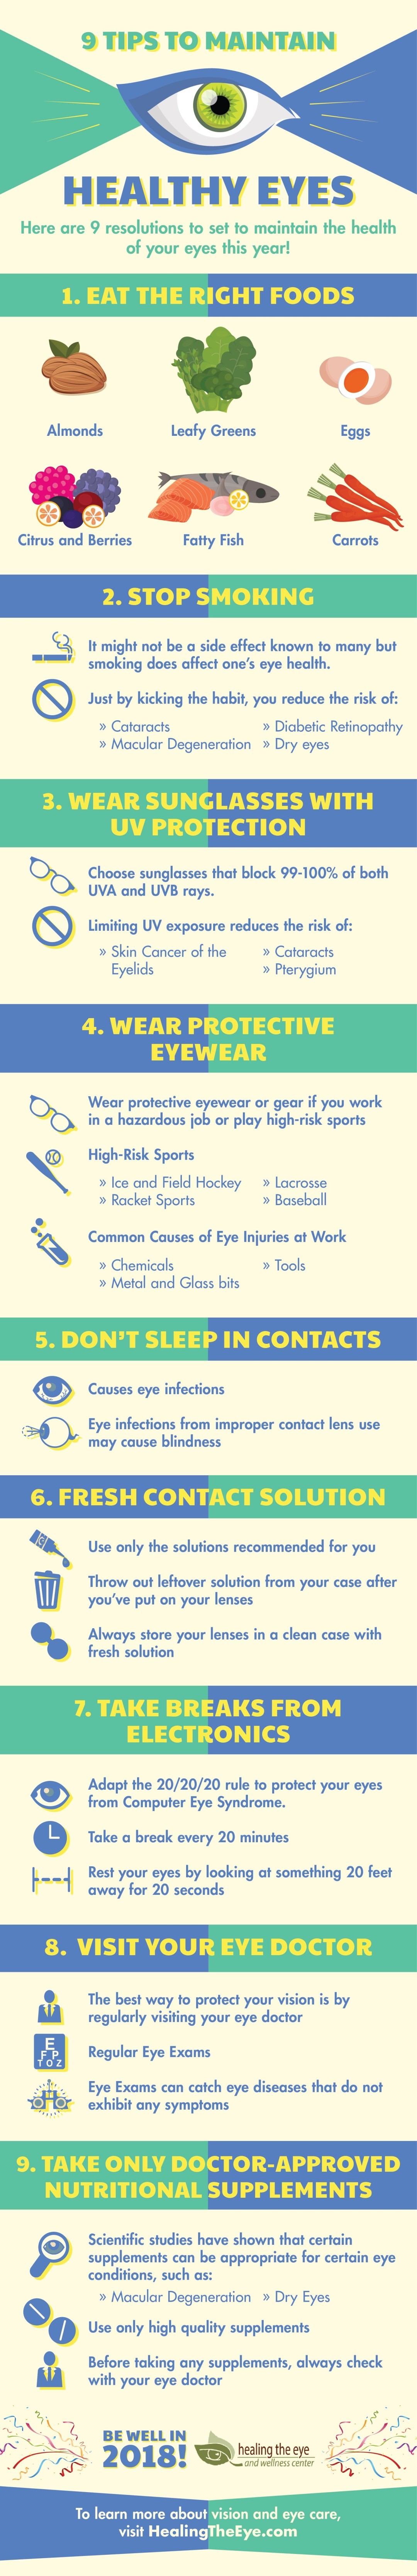 Tips To Maintain Healthy Eyes